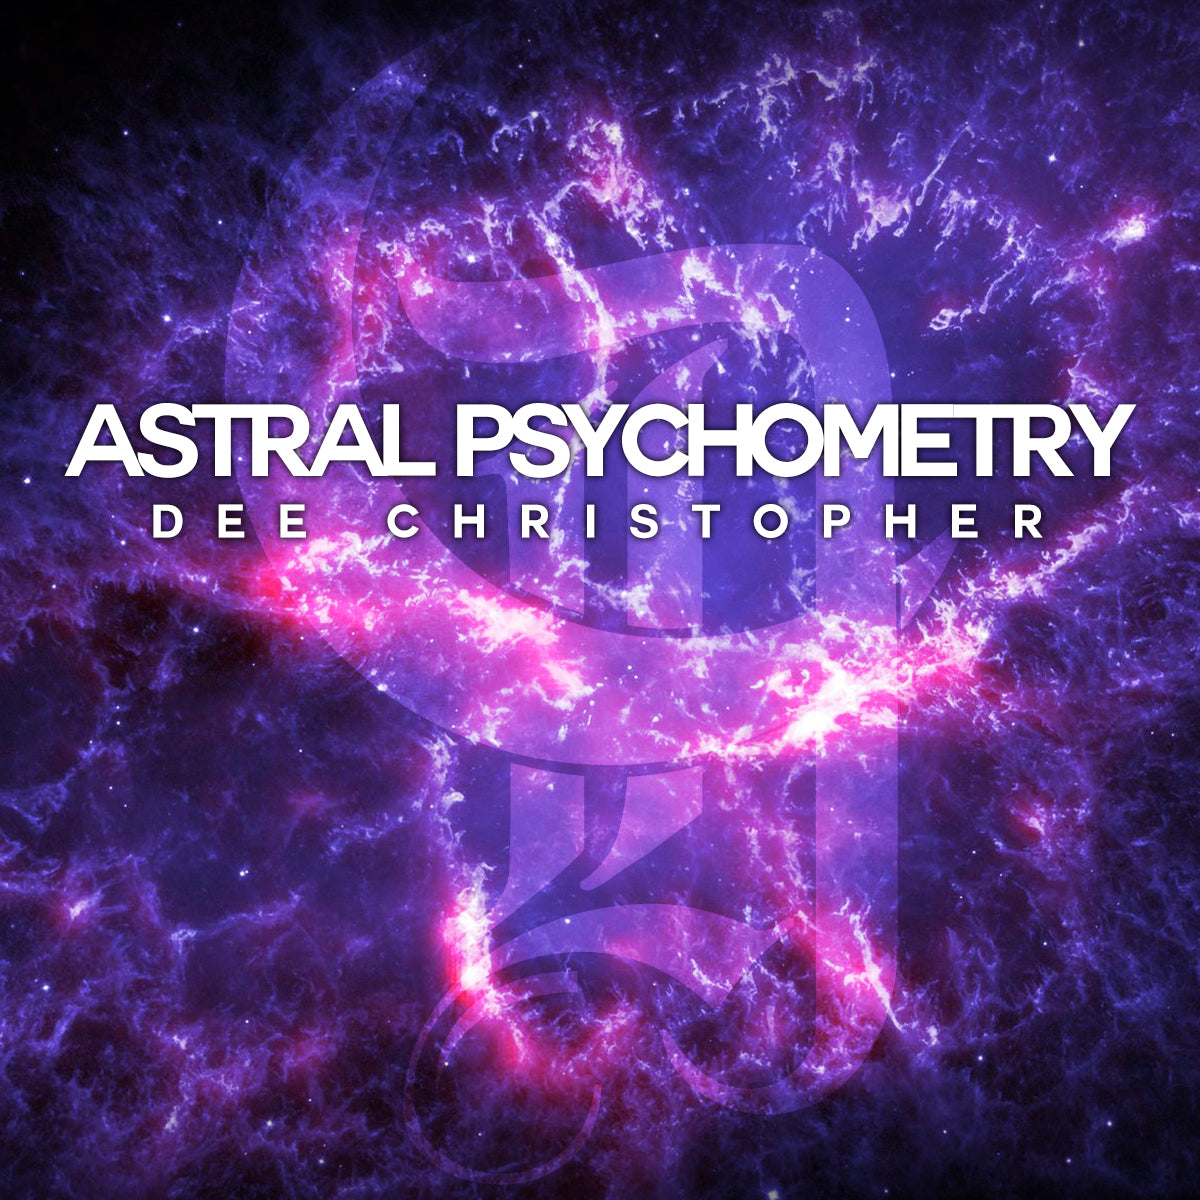 Astral Psychometry